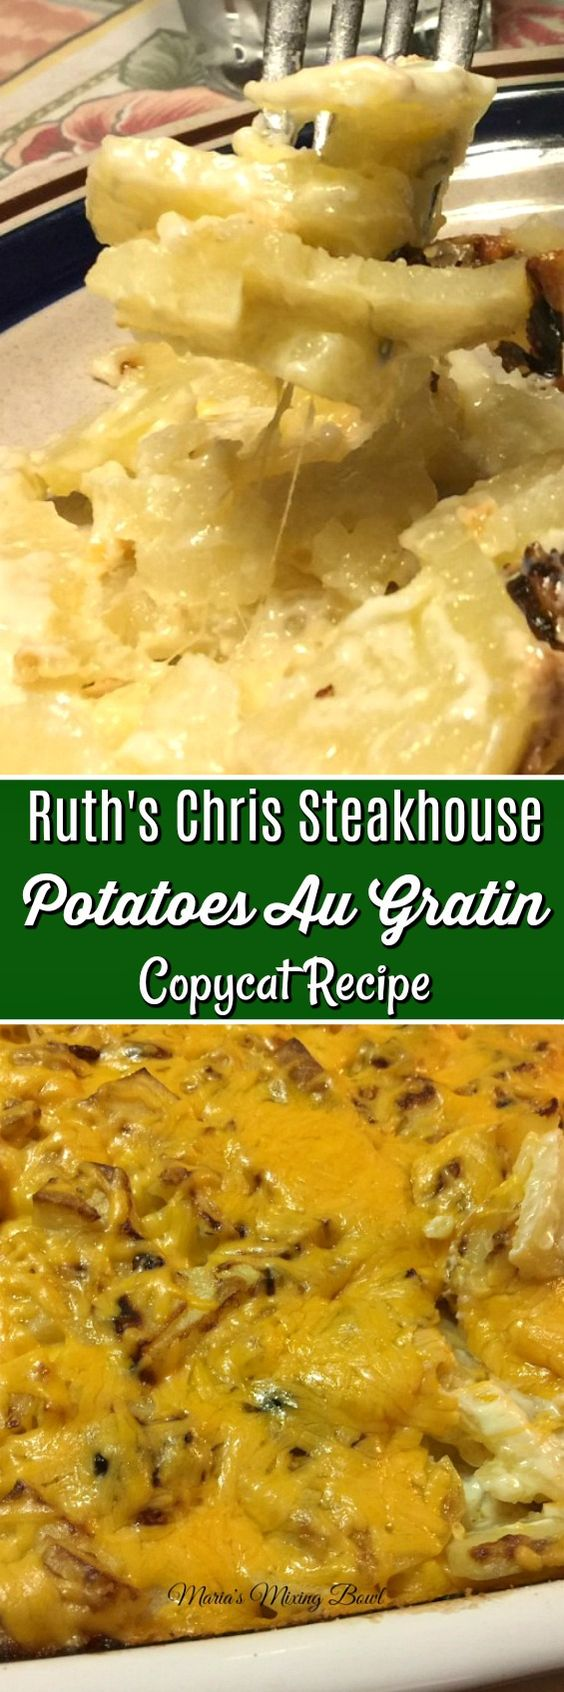 Ruth's Chris Steakhouse Potatoes Au Gratin Copycat Recipe- One of those recipe my family asks for over and over again. It is creamy and has just the right amount of garlic and cream.